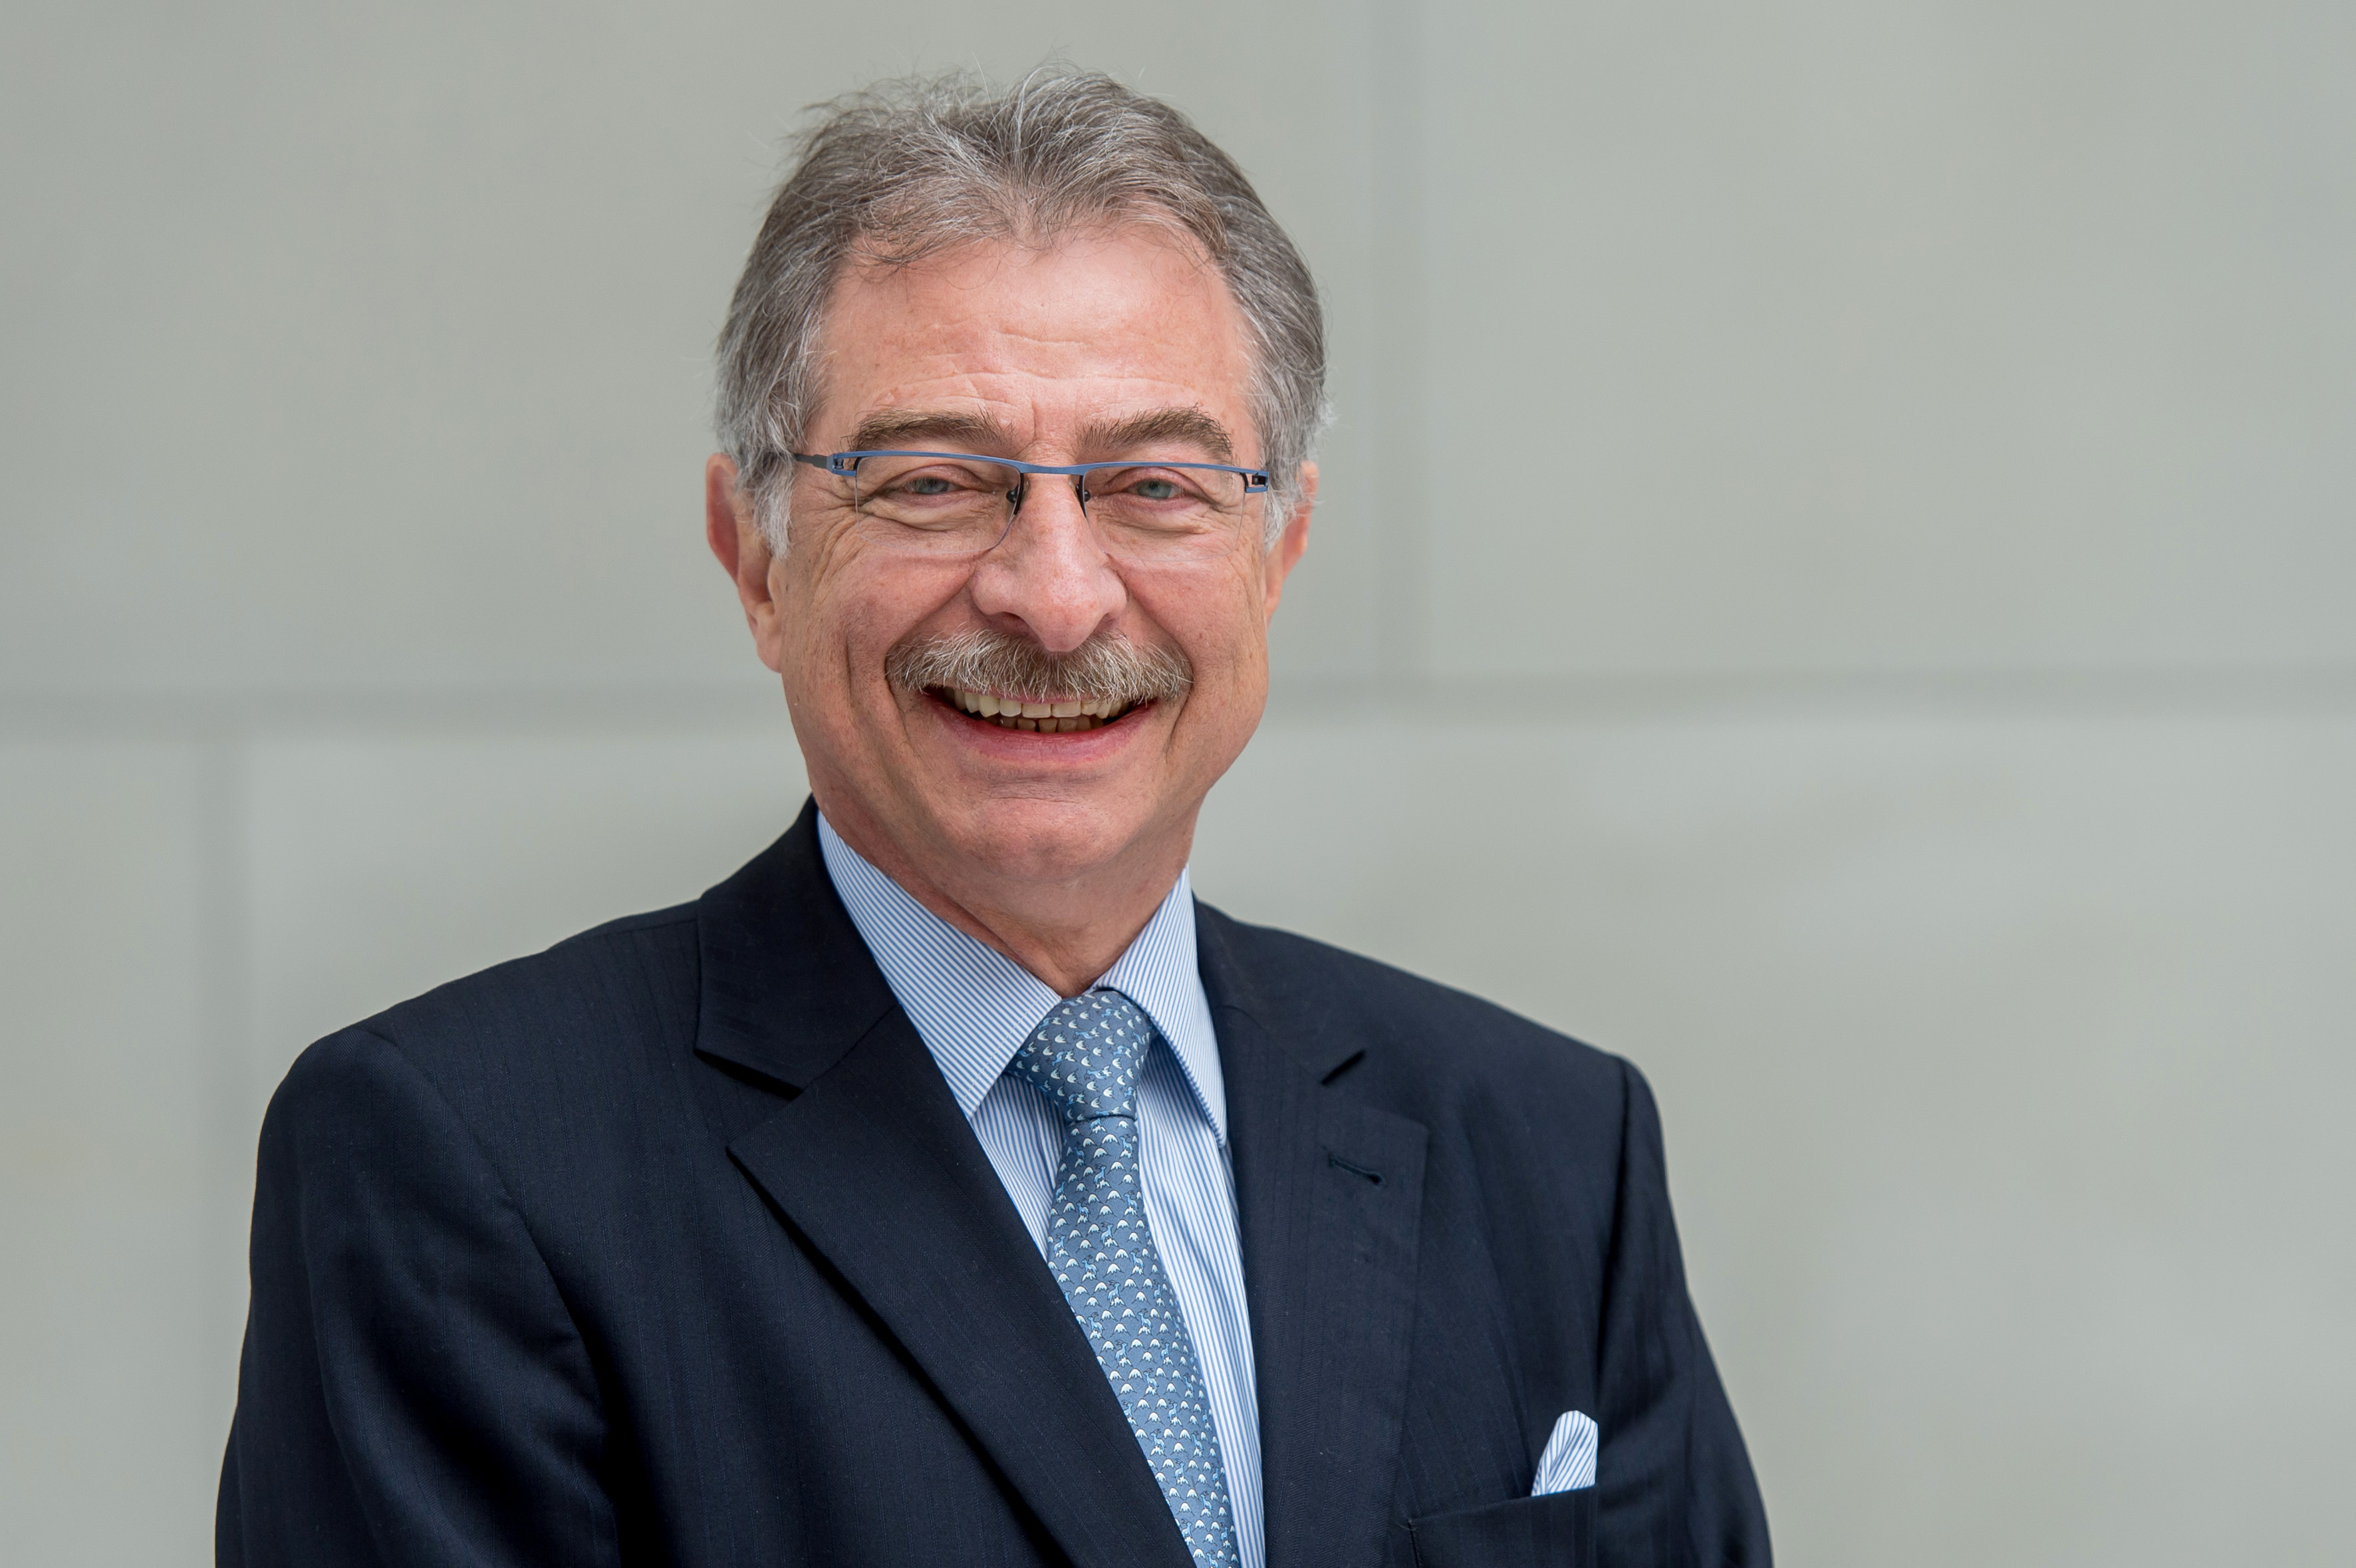 Picture of Prof. Dieter Kempf, President of BDI